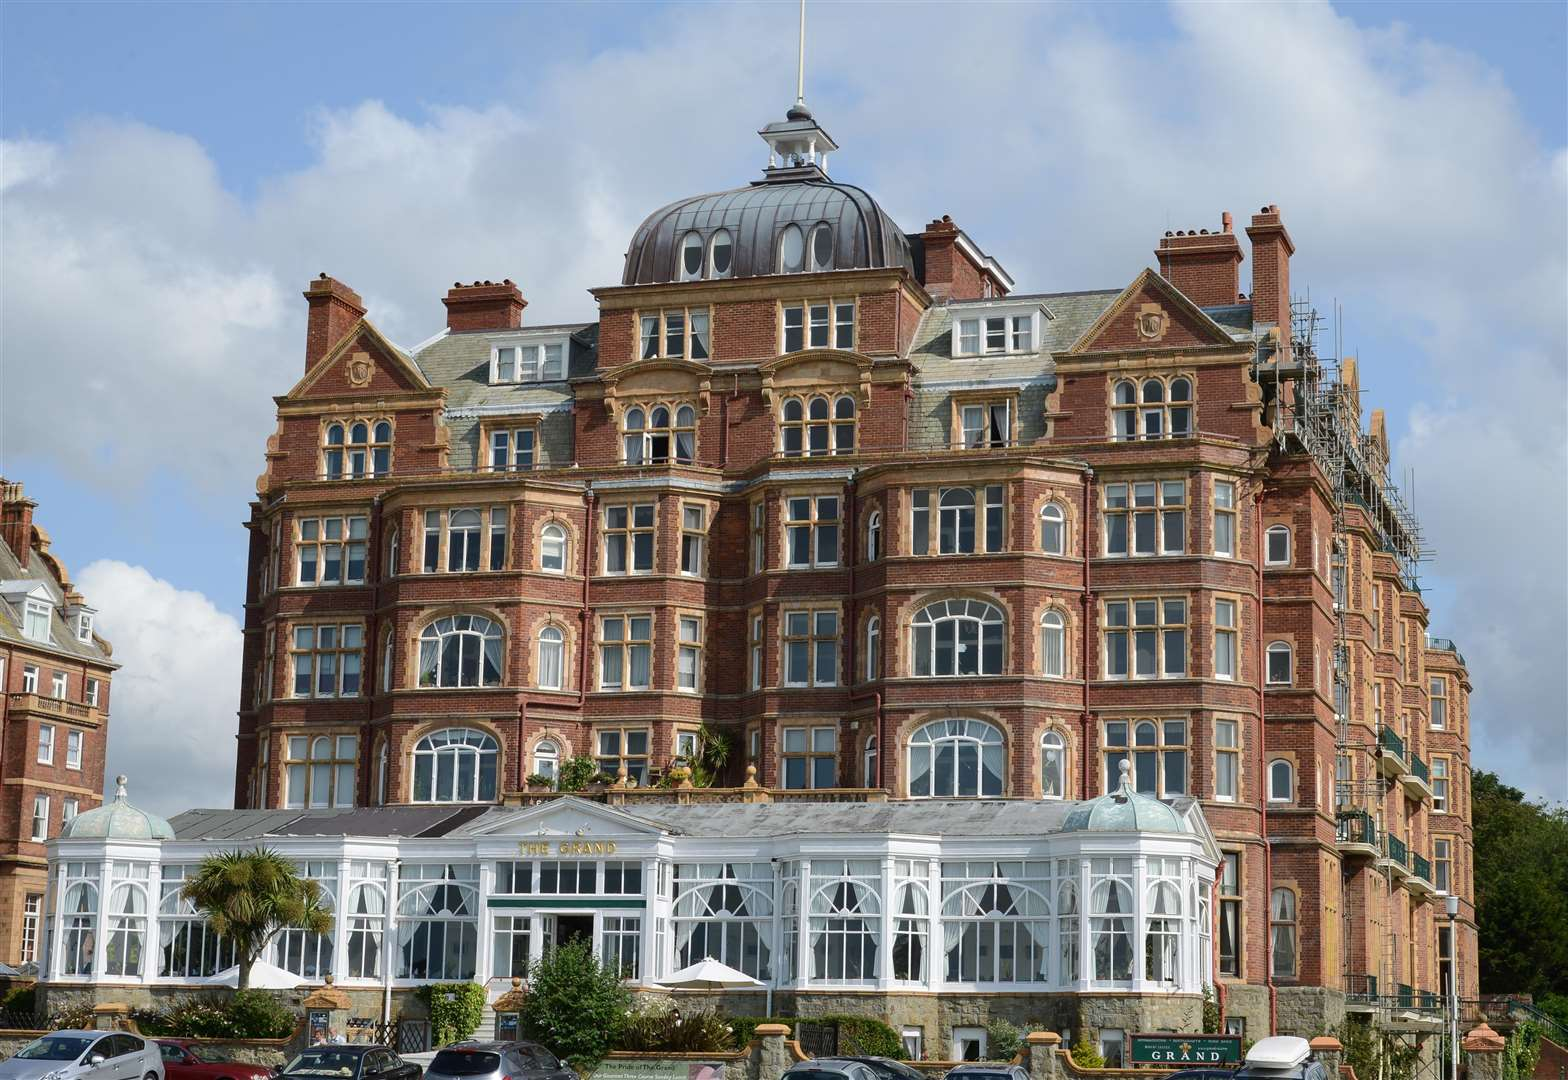 The Grand, which has changed hands after the previous directors were declared bankrupt